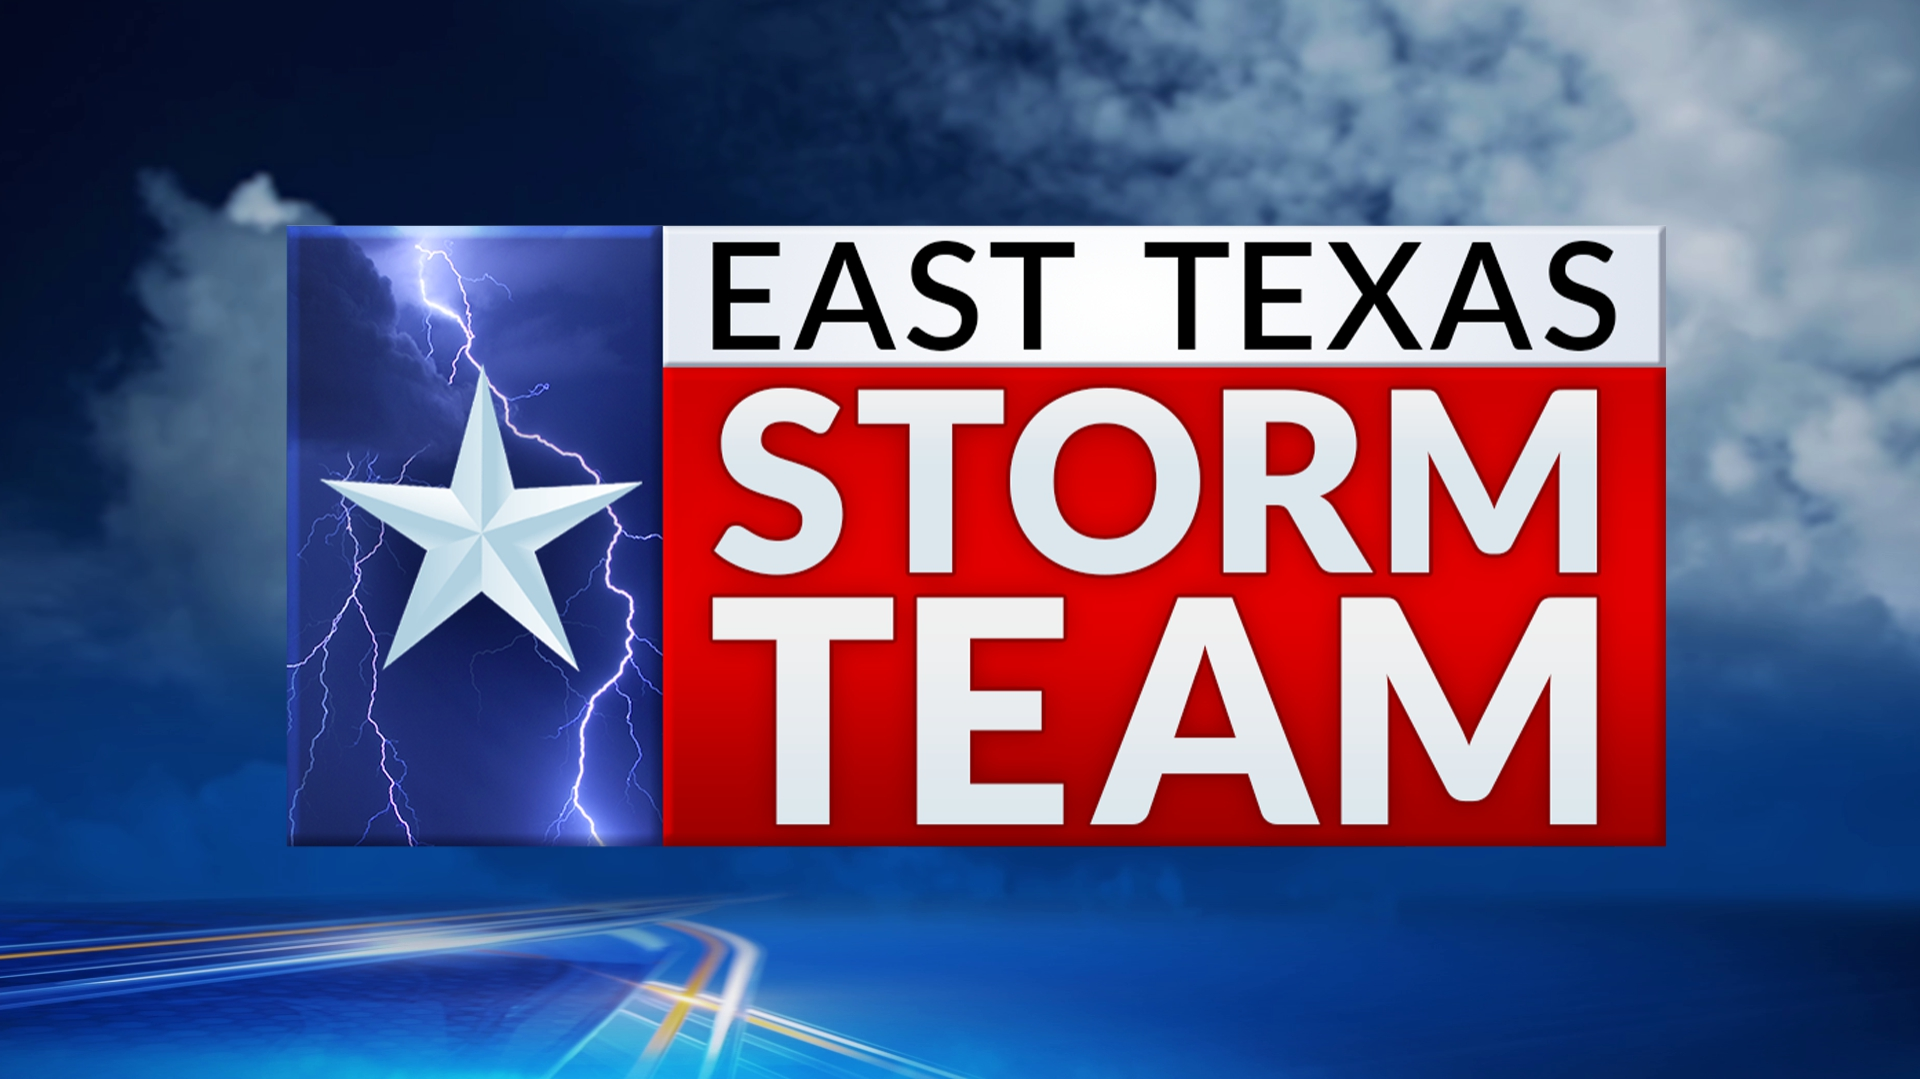 East Texas Storm Team Logo_1551911965710.jpg.jpg